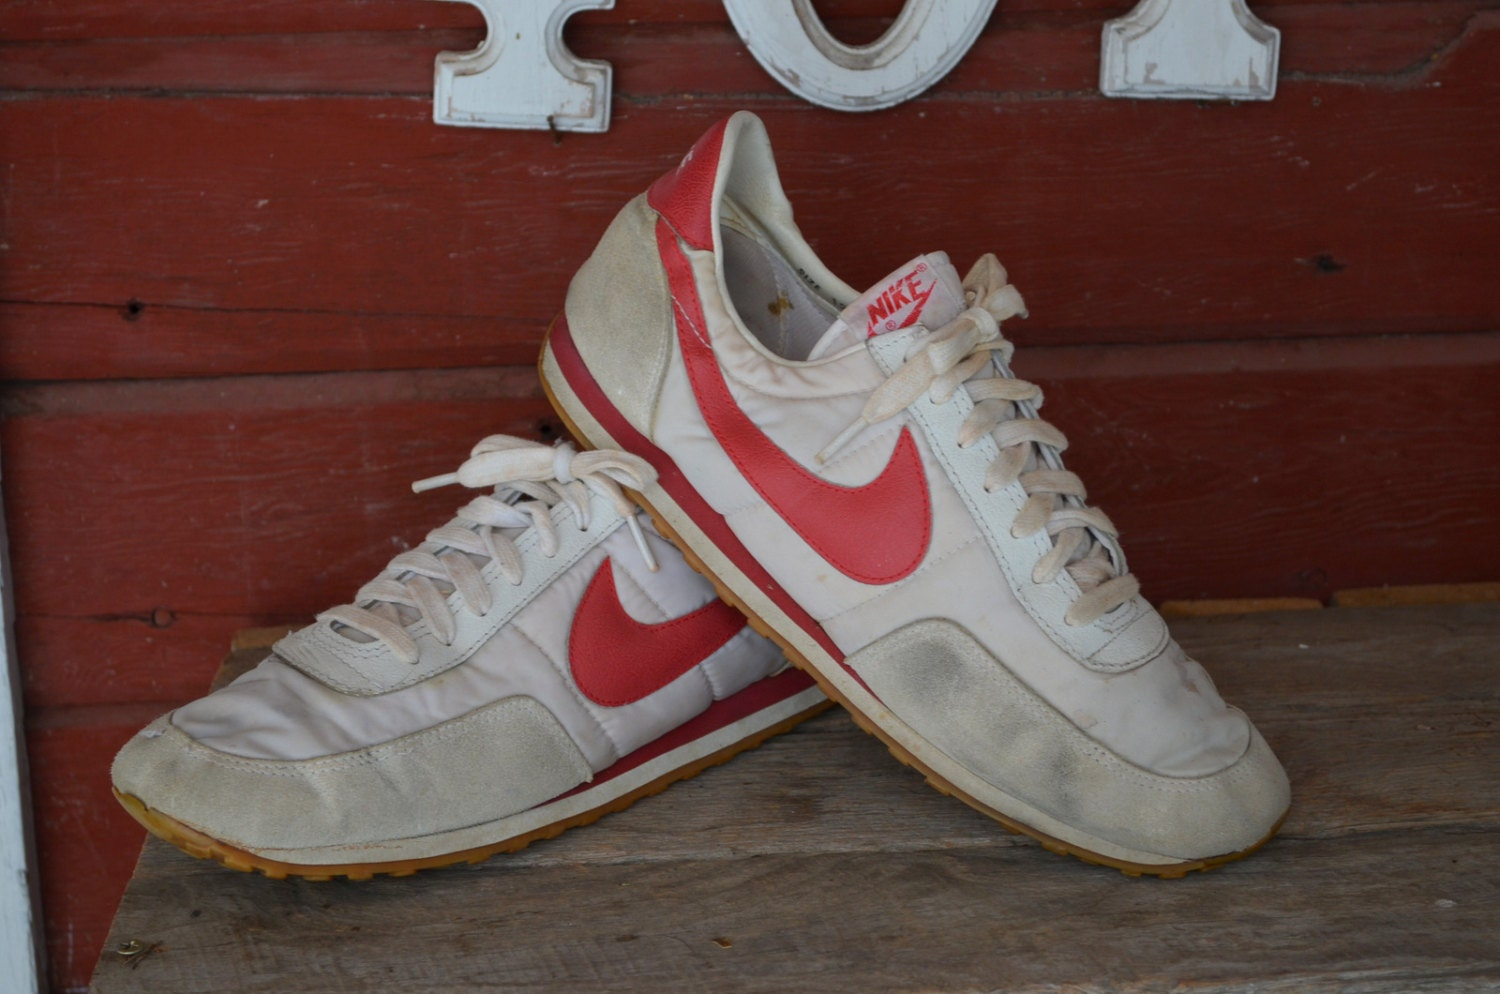 Vintage 1980s Nike Made In Korea Waffle Bottom Running Shoes